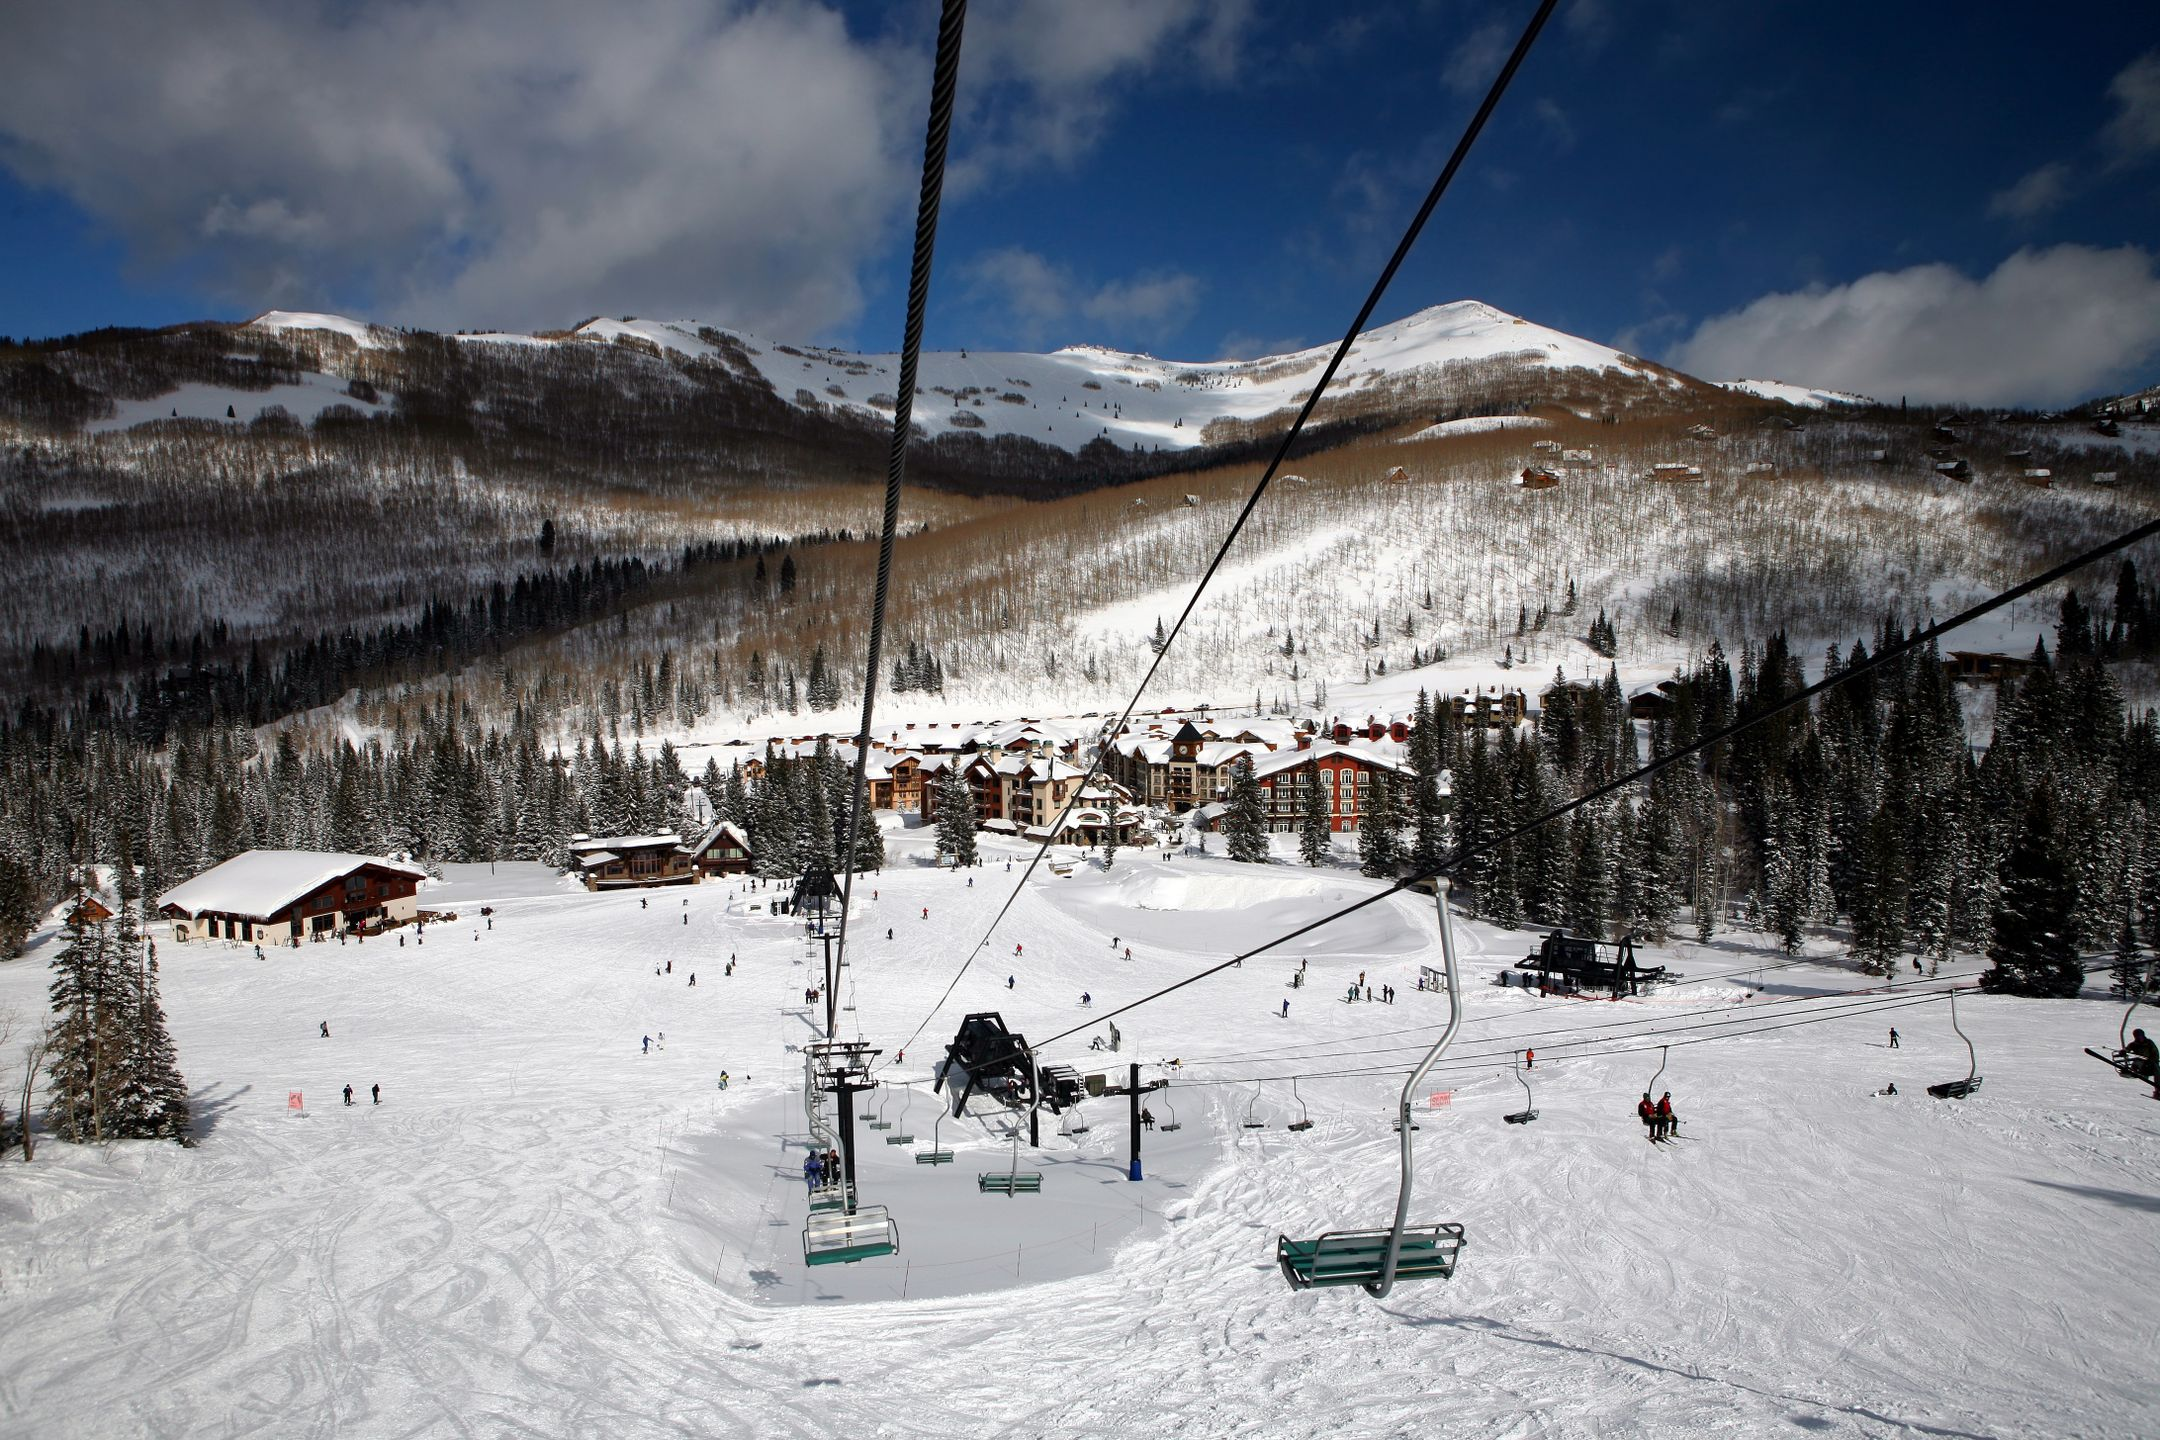 Skiing United States ski resort Solitude ripatrip travel big